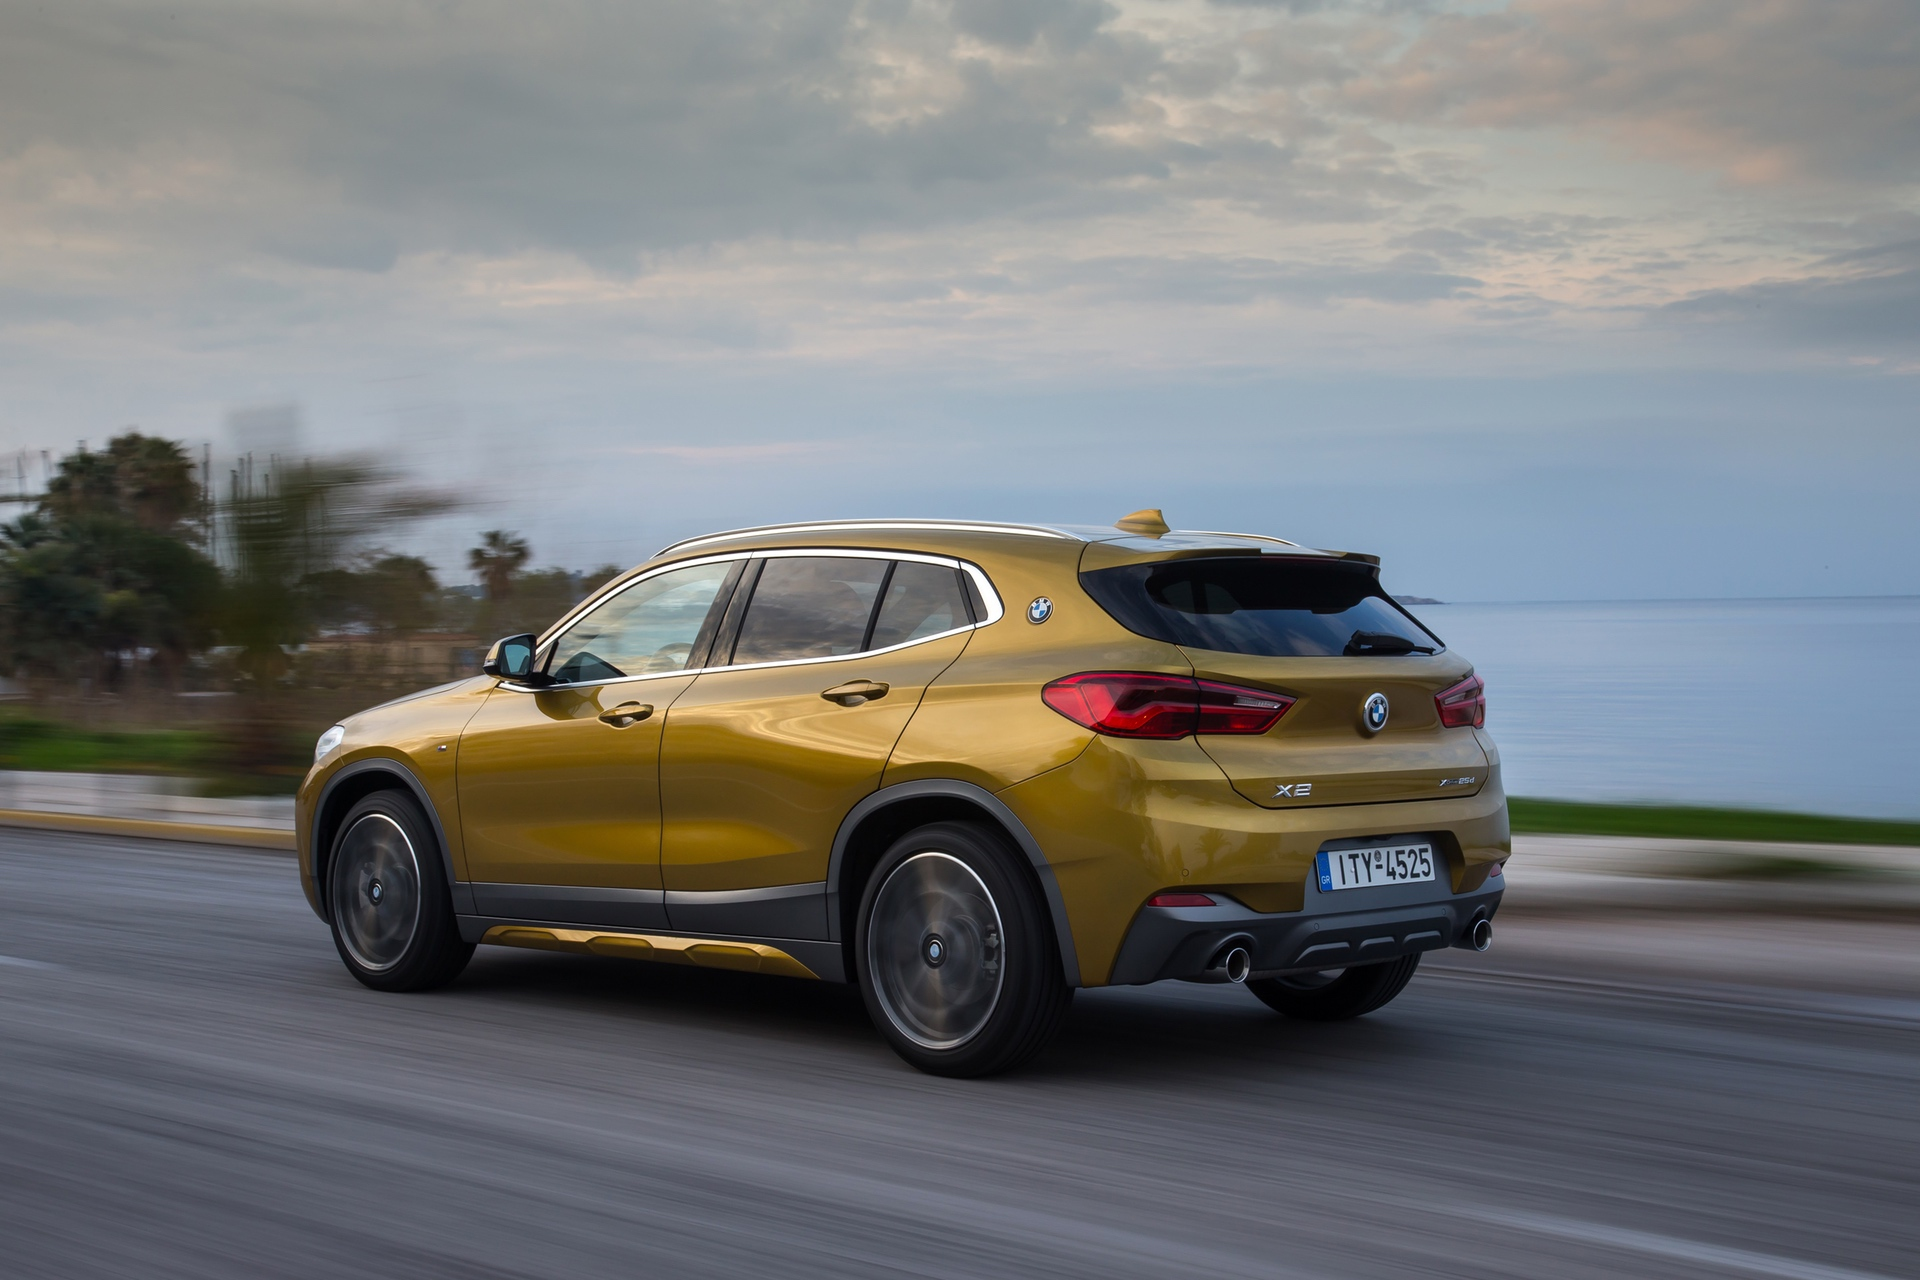 BMW_X2_Greek_presskit_0015